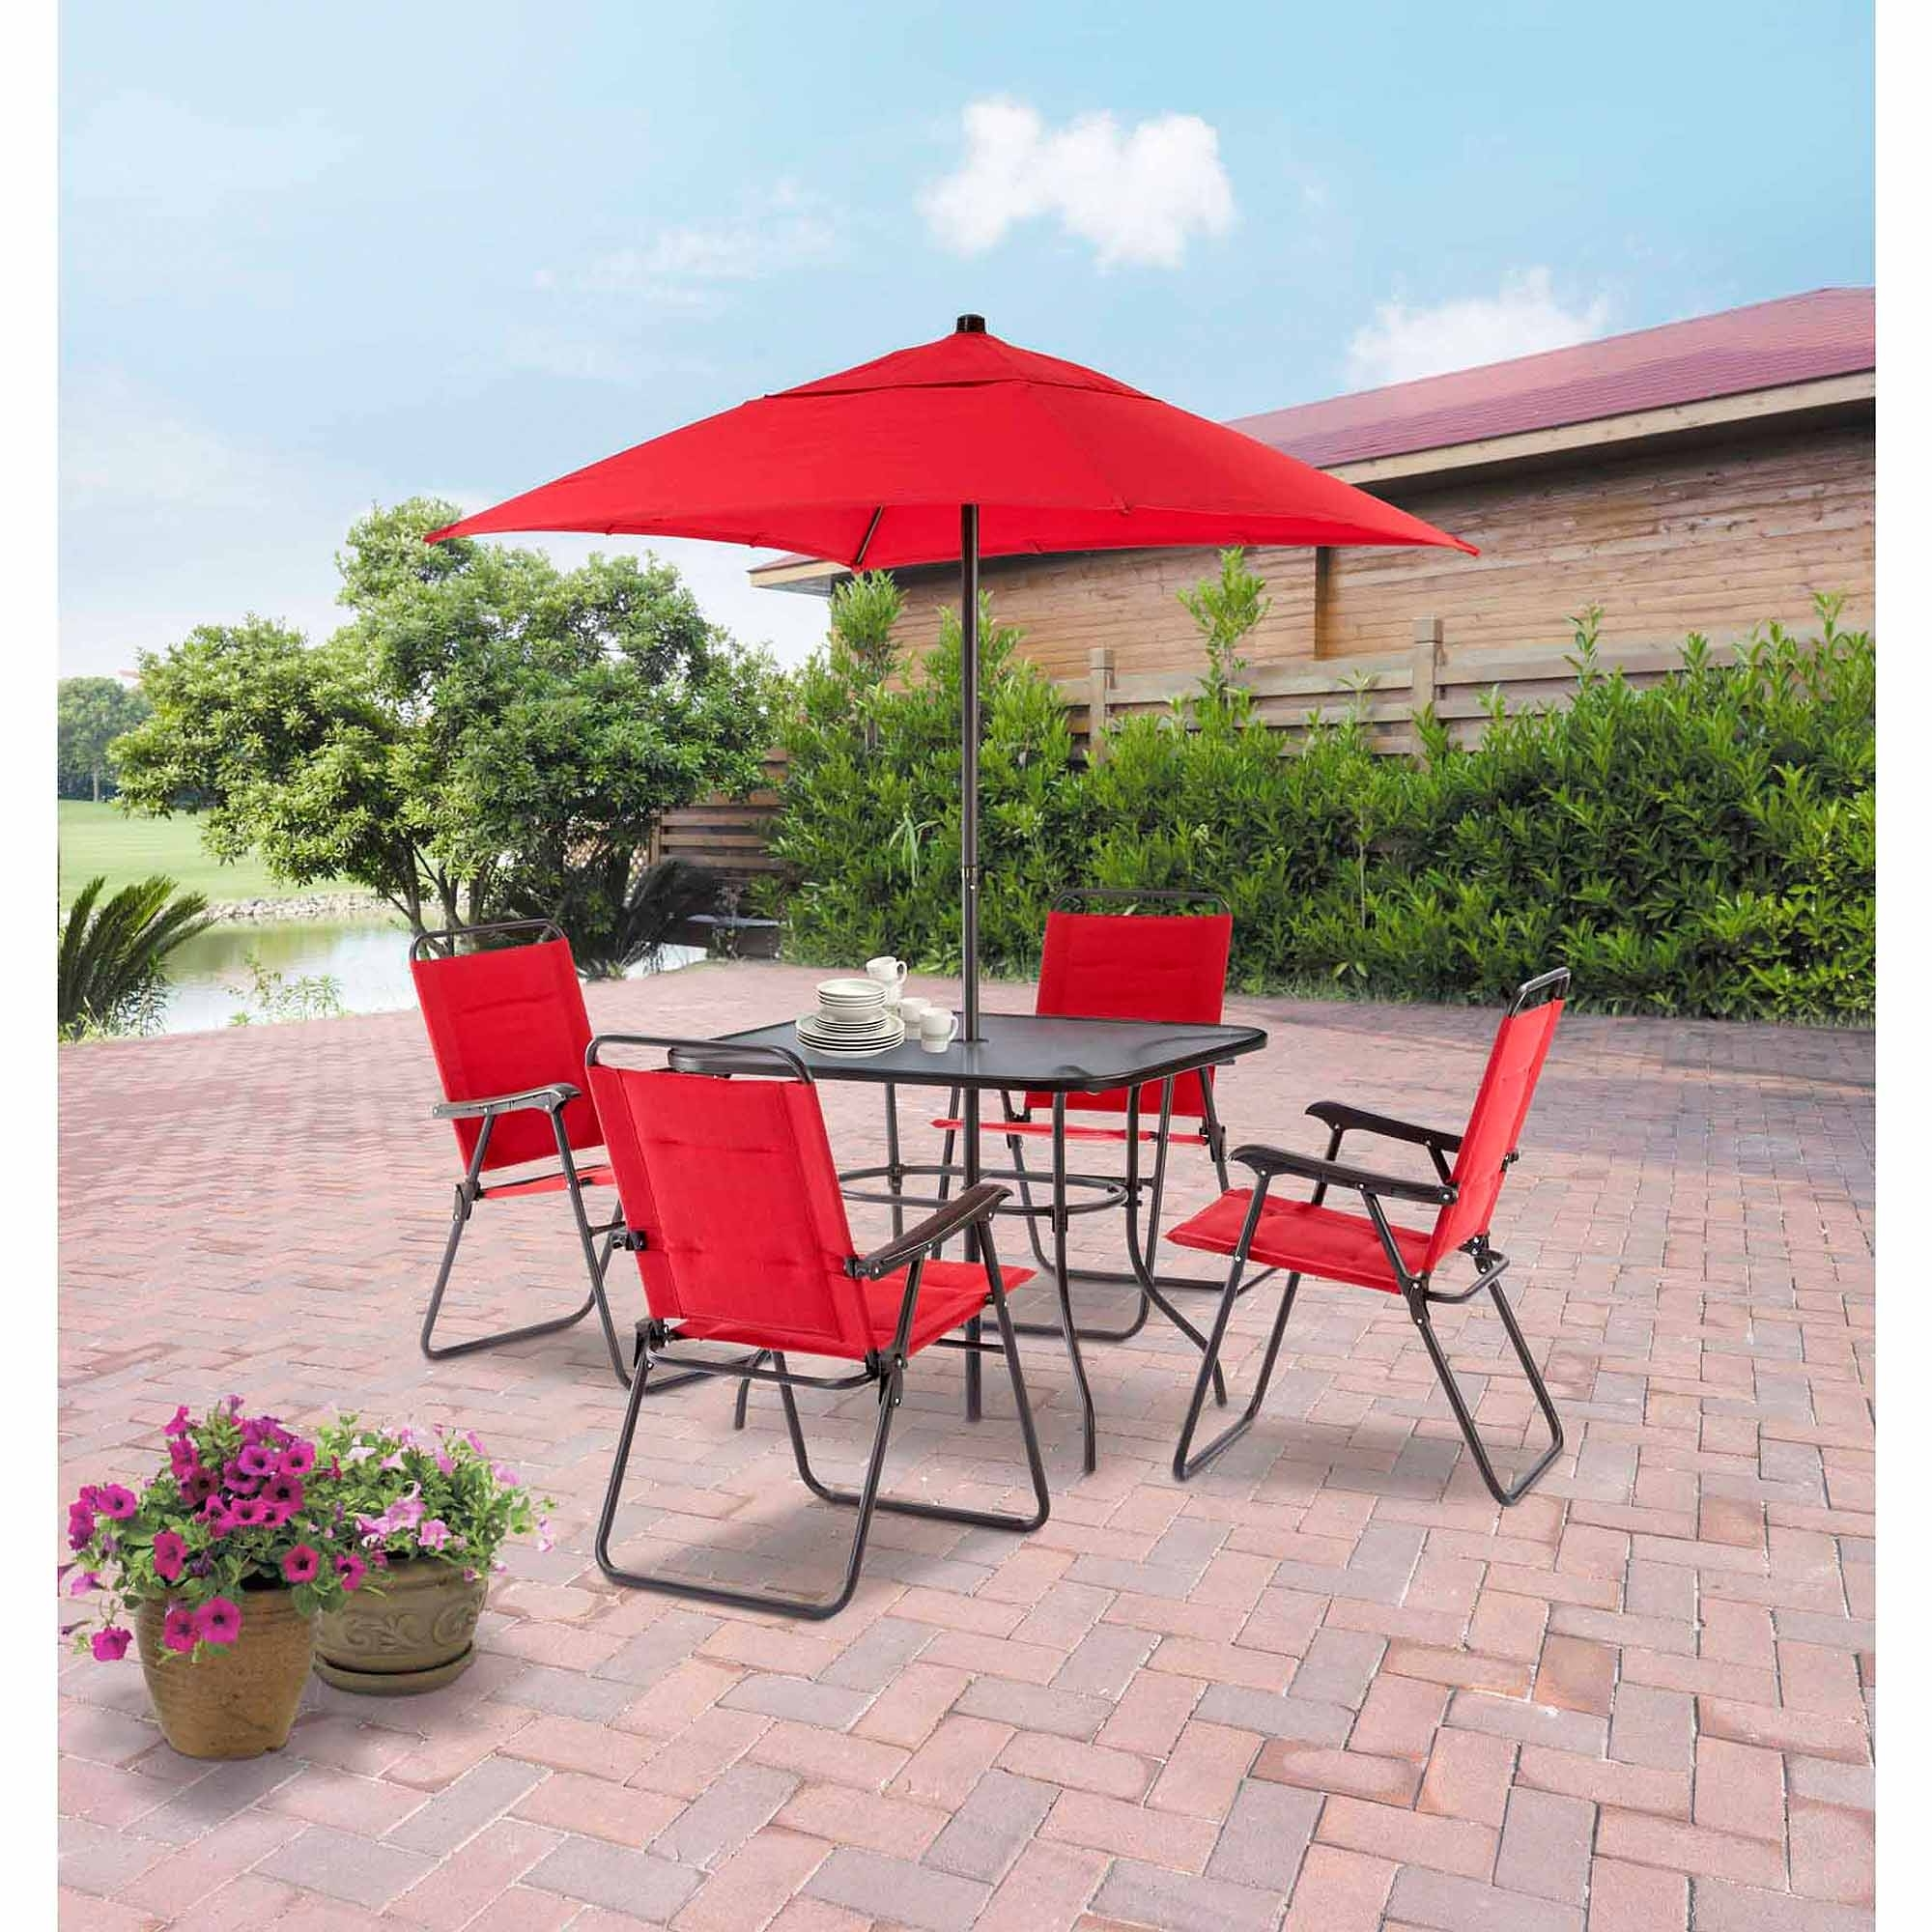 Mainstays Searcy Lane 6 Piece Padded Folding Patio Dining Set, Red For 2018 Walmart Umbrellas Patio (View 3 of 20)